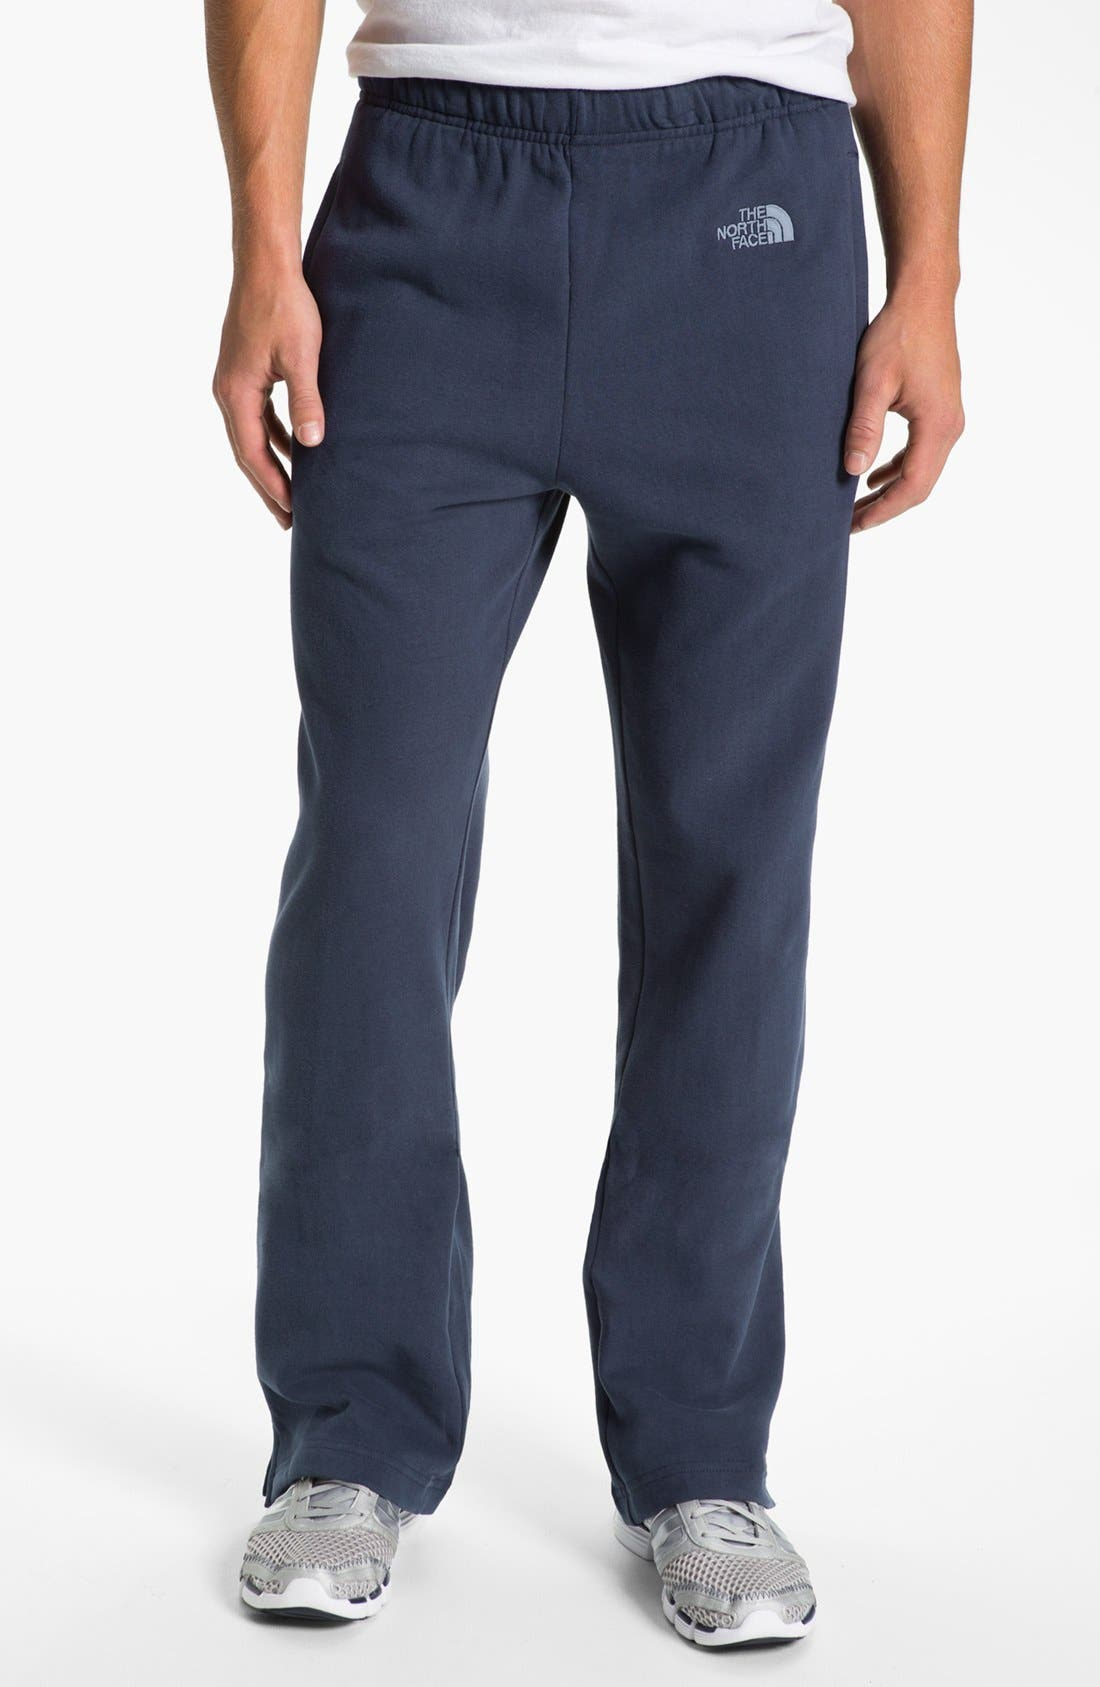 Alternate Image 1 Selected - The North Face 'Logo' Pants